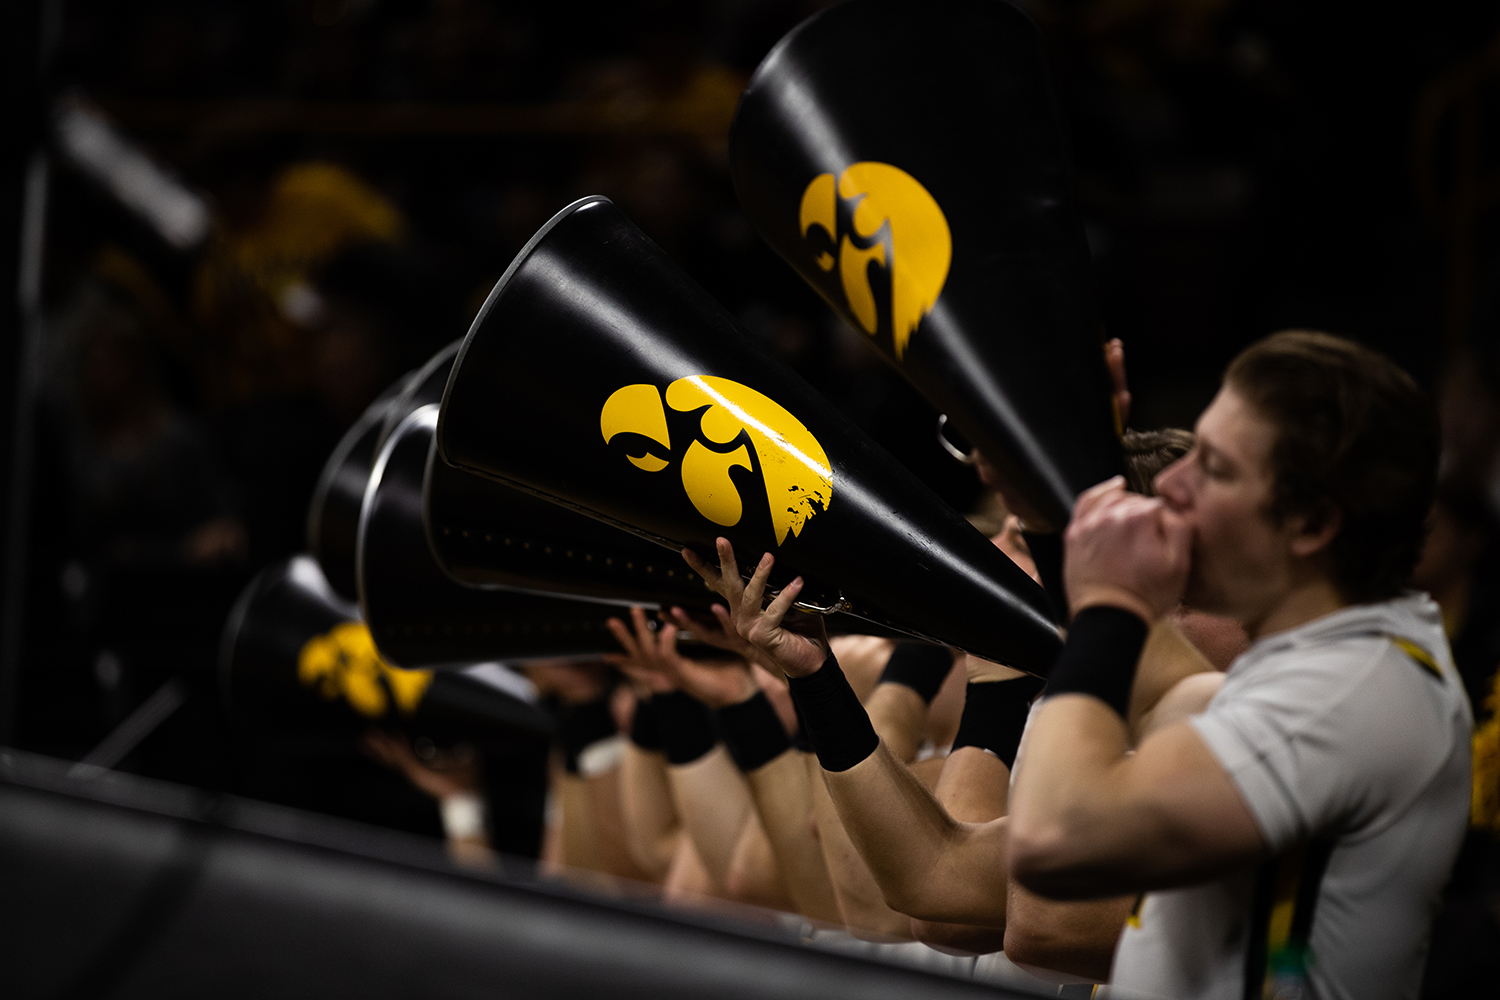 The+spirit+squad+cheers+on+the+team+during+the+men%27s+basketball+game+against+Savannah+State+at+Carver-Hawkeye+Arena+on+Tuesday%2C+December+22%2C+2018.+The+Hawkeyes+defeated+the+Tigers+110-64.